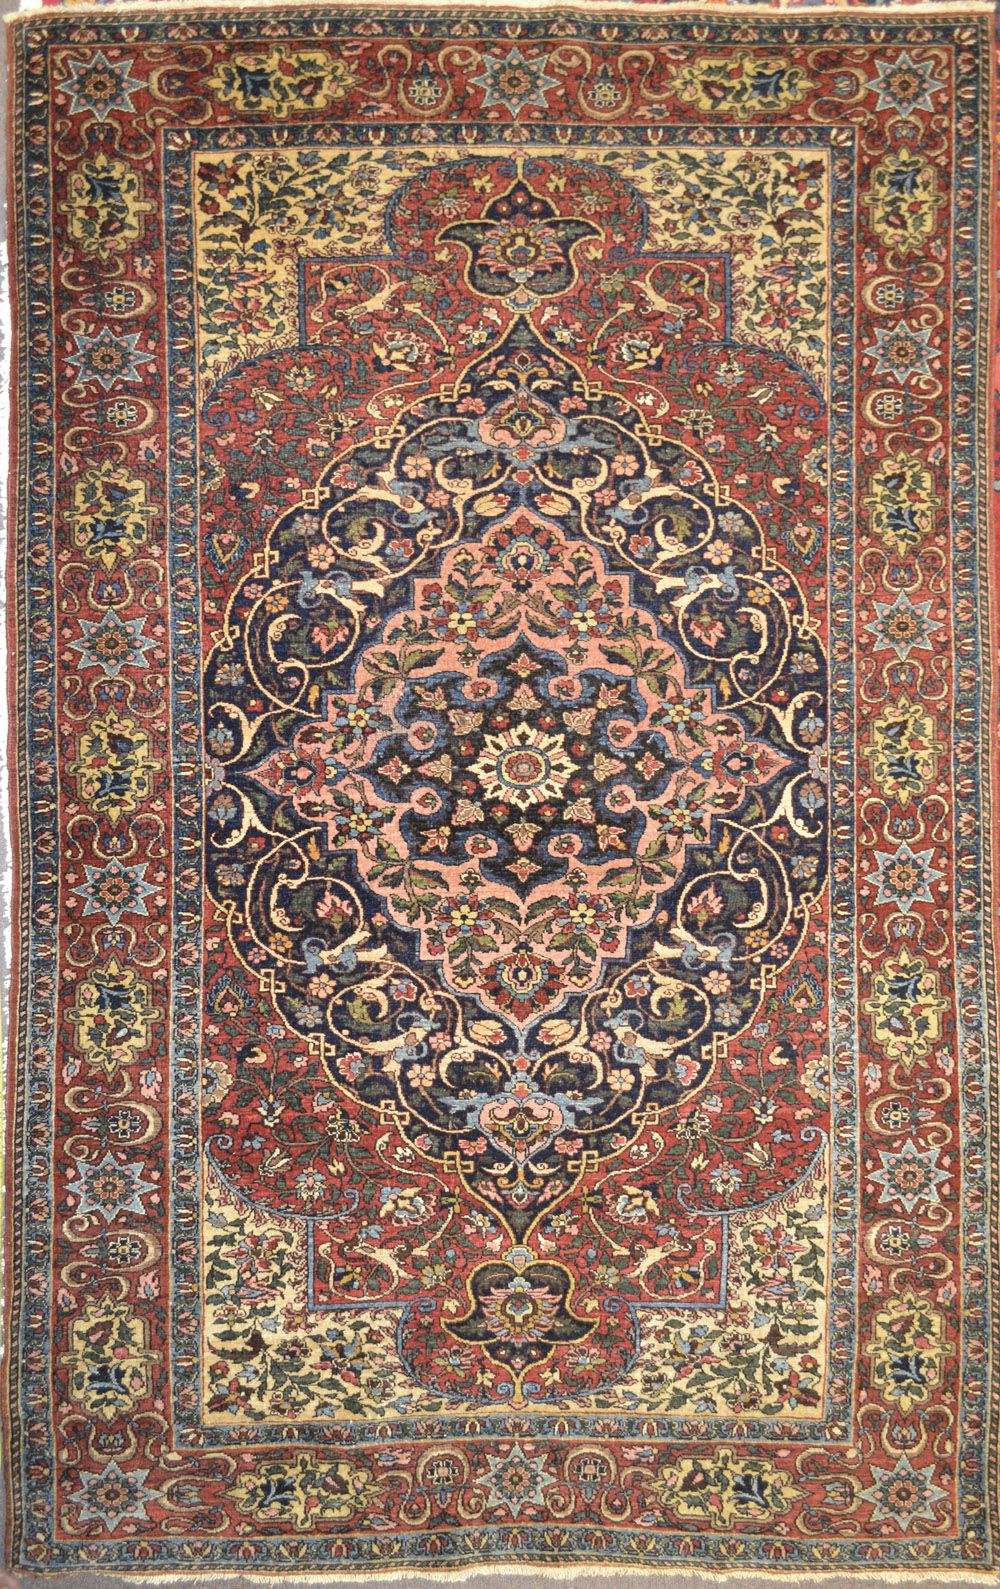 Antique Isfahan Mobarakeh Wool Persian Rug Item Bg 3115 Rugs Persian Rug Designs Persian Rug